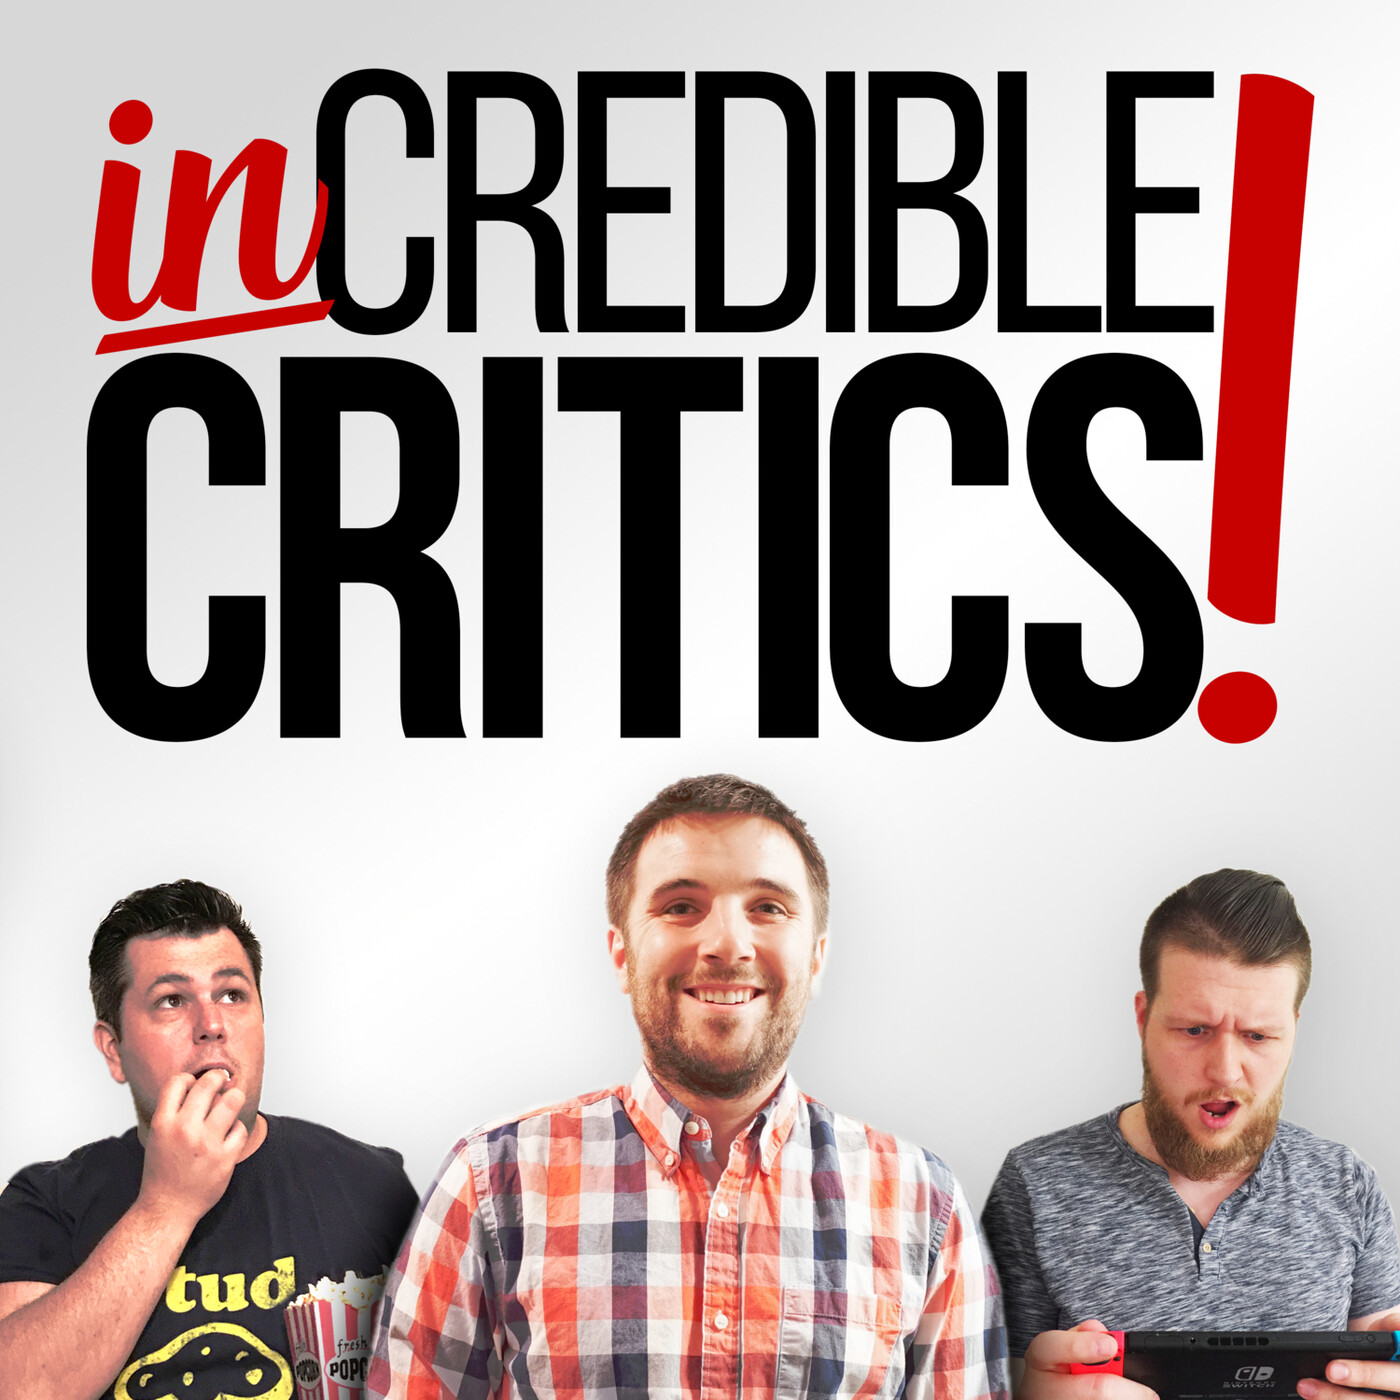 Incredible Critics - Ep. 177